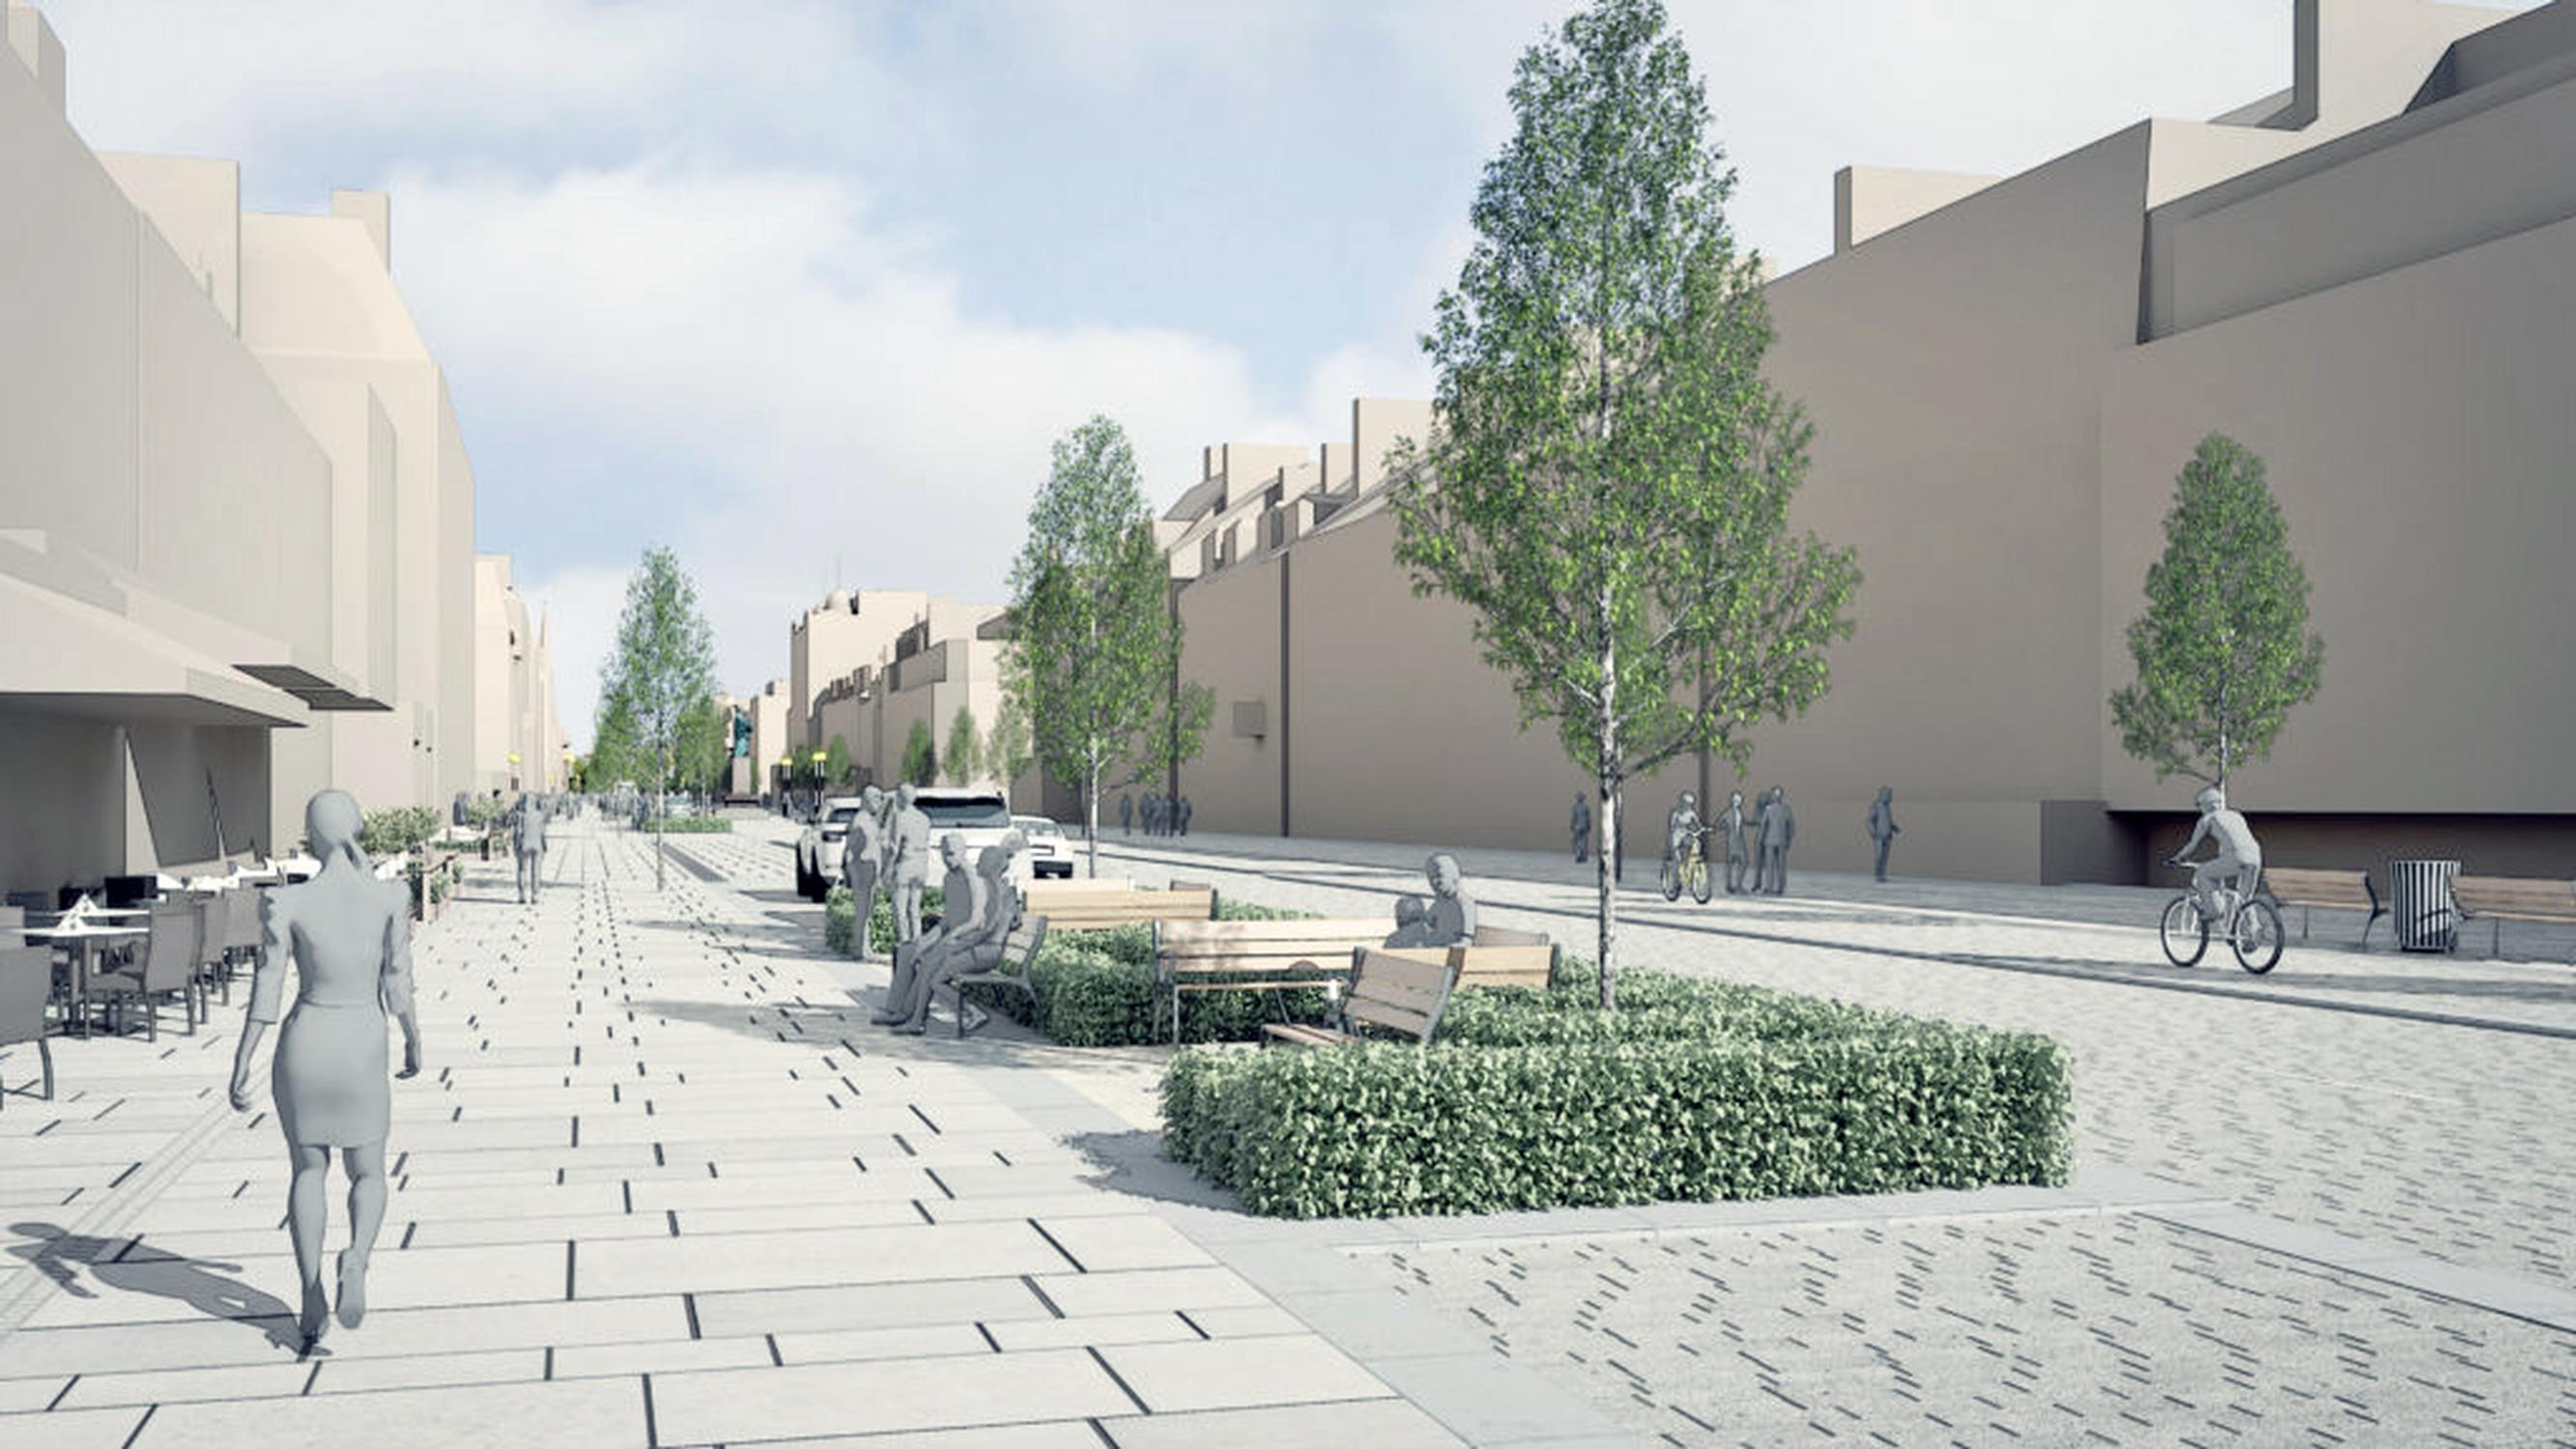 A concept image for Edinburgh's George Street scheme